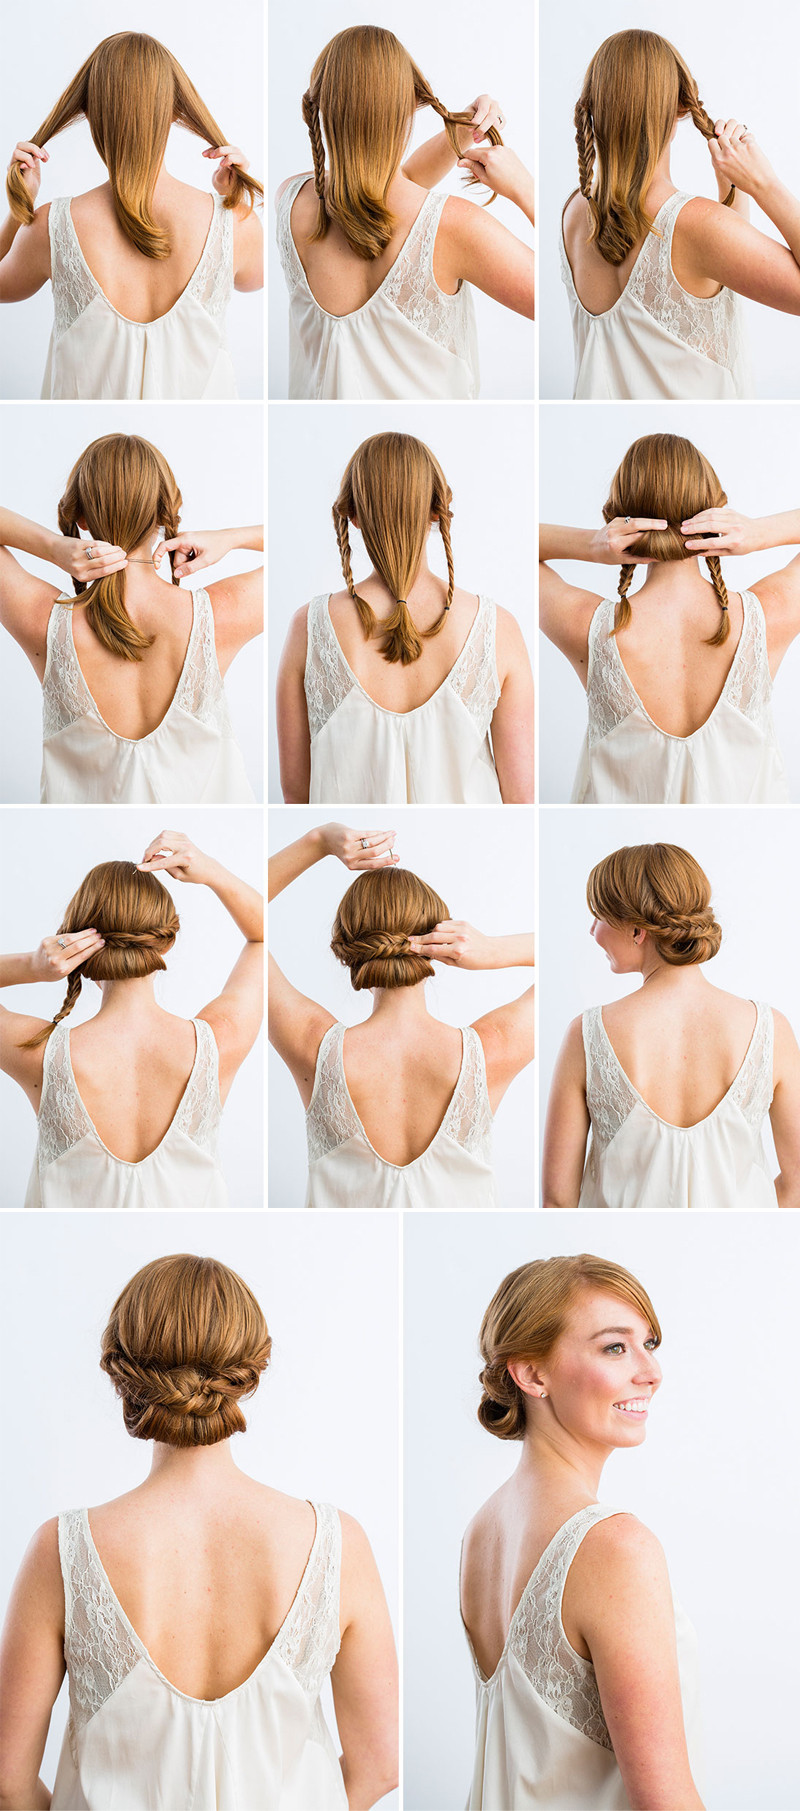 Best ideas about DIY Wedding Updos . Save or Pin 10 Best DIY Wedding Hairstyles with Tutorials Now.